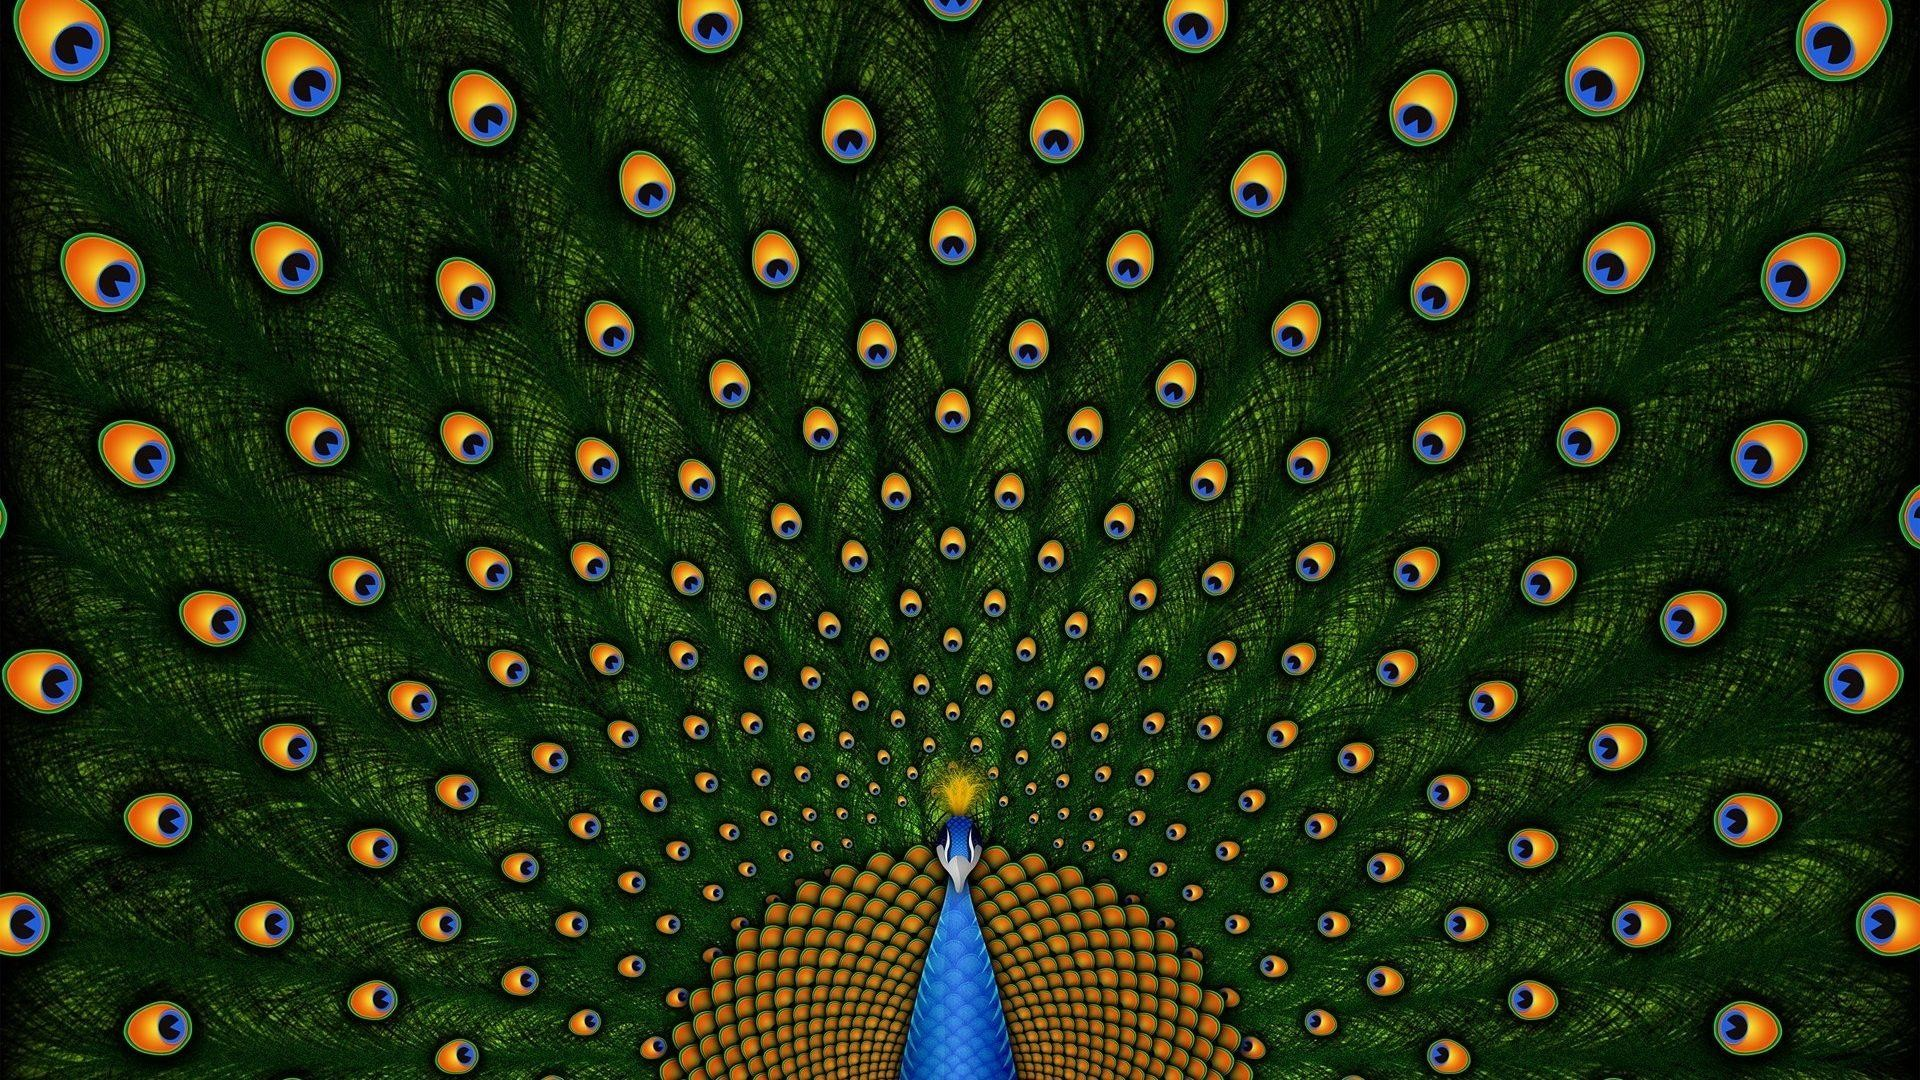 Peacock Art Photography Wallpaper Hq Backgrounds: Wallpapers Of Peacock Feathers HD ·①